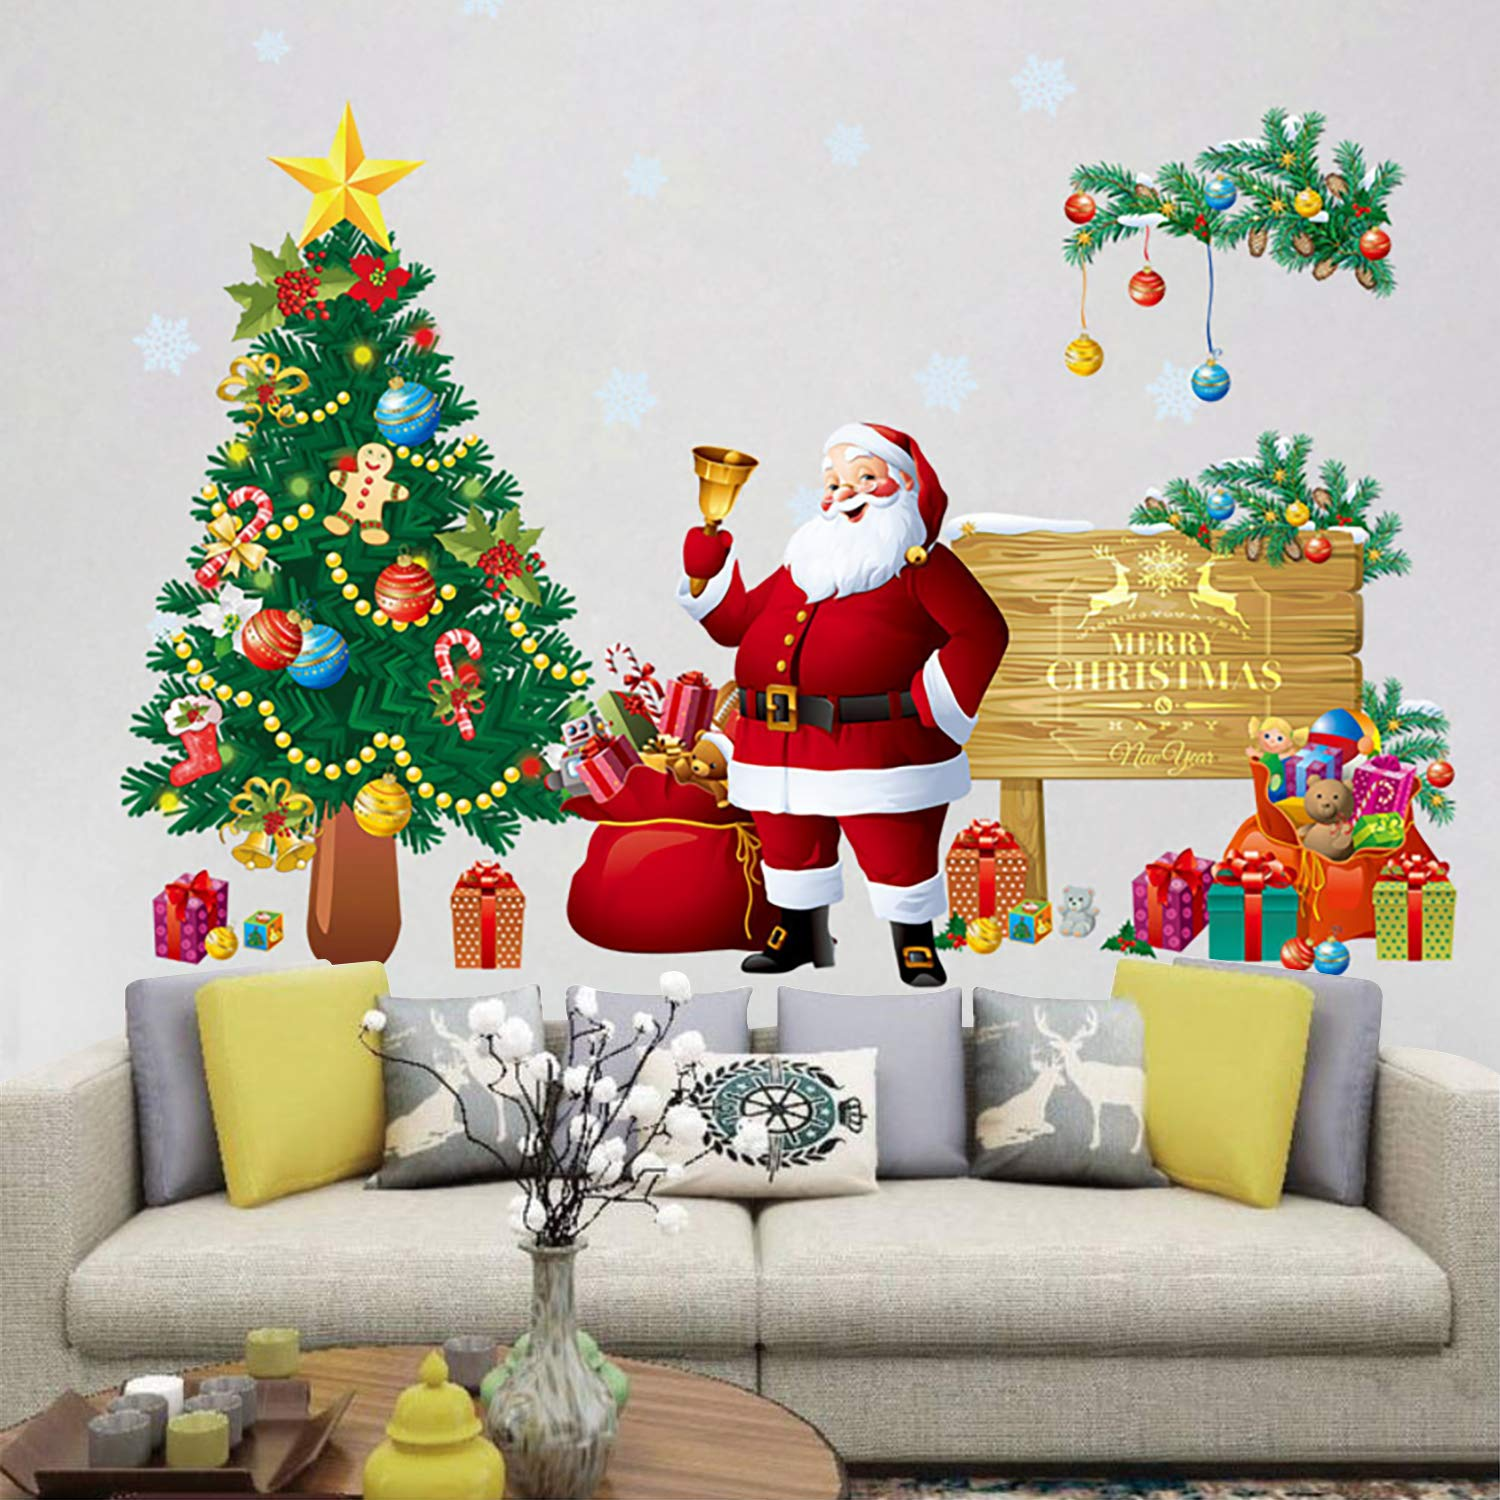 Amazon Com Christams Wall Sticker Diy Santa Claus With Christmas Tree Wall Decals Removable Snowflake Wall Stickers Murals For Home Kid S Living Room Bedroom Shop Window Decorations Baby,6 Bedroom Single Story Simple 5 Bedroom House Plans